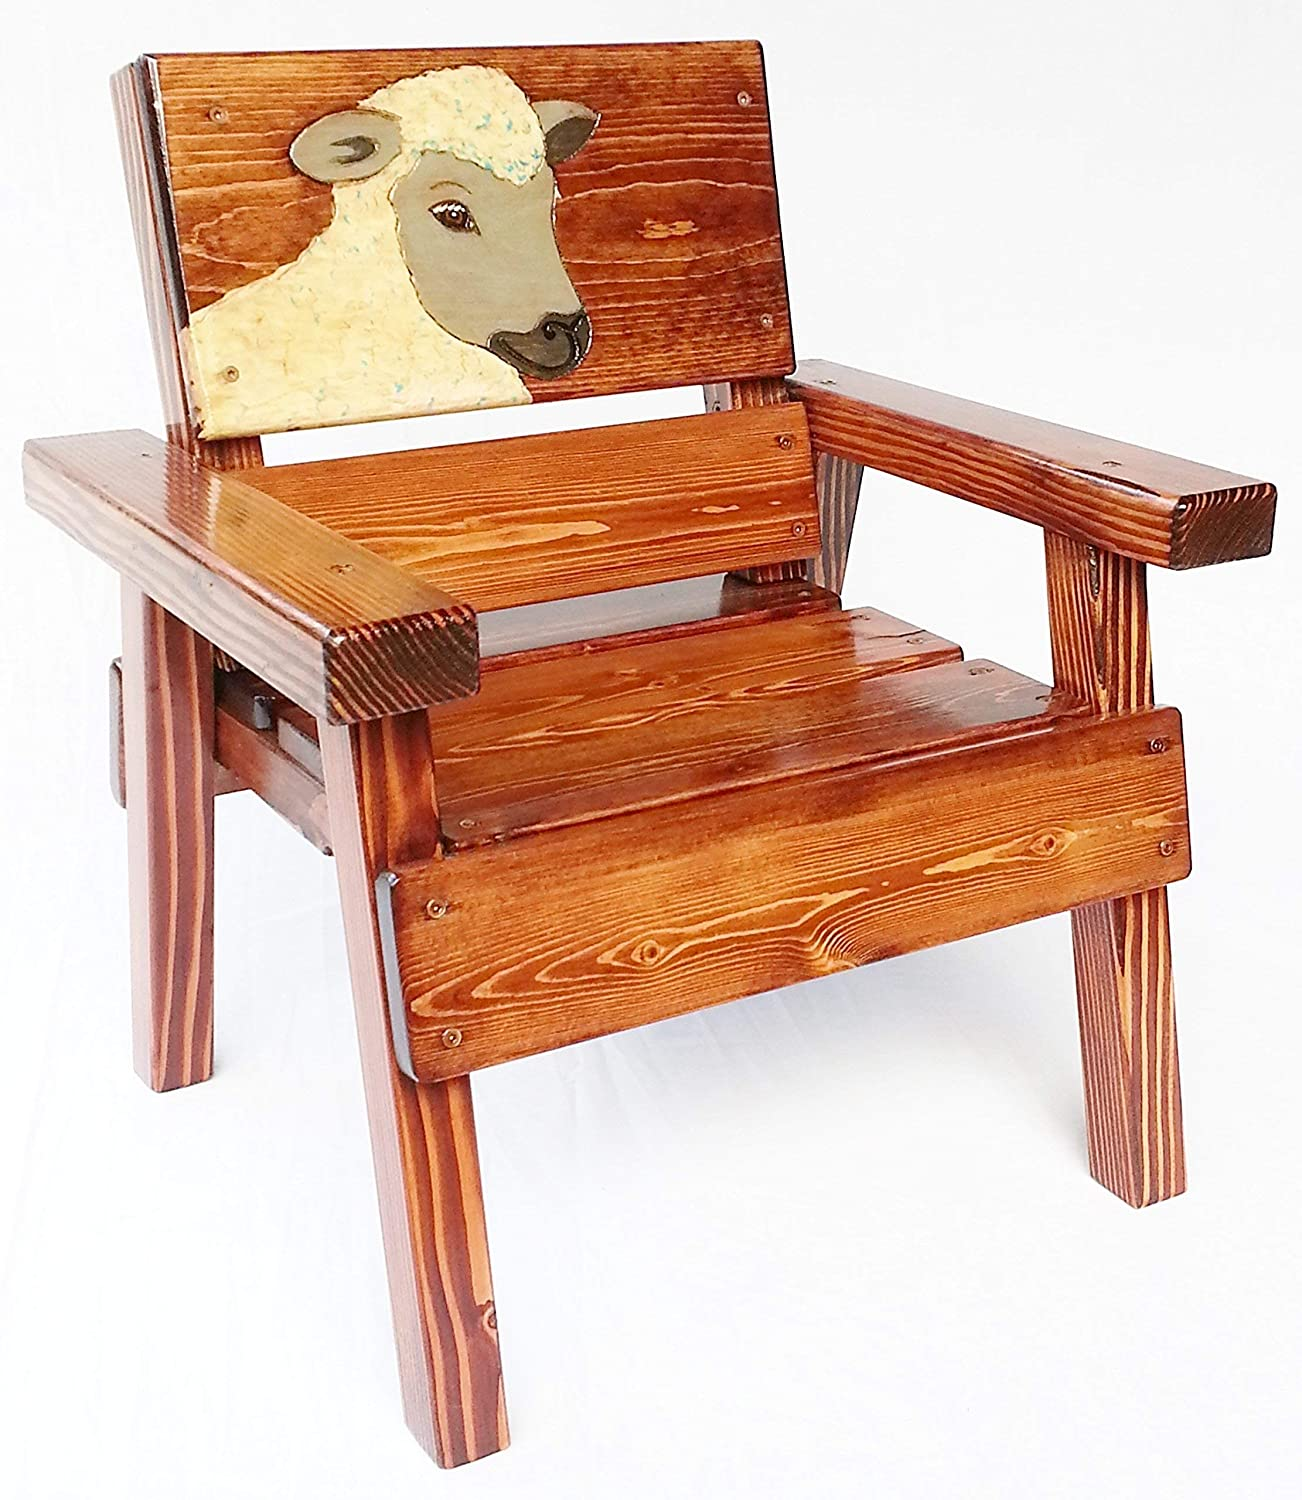 Astounding Amazon Com Kids Heirloom Wooden Chair With Arms Engraved Home Interior And Landscaping Oversignezvosmurscom